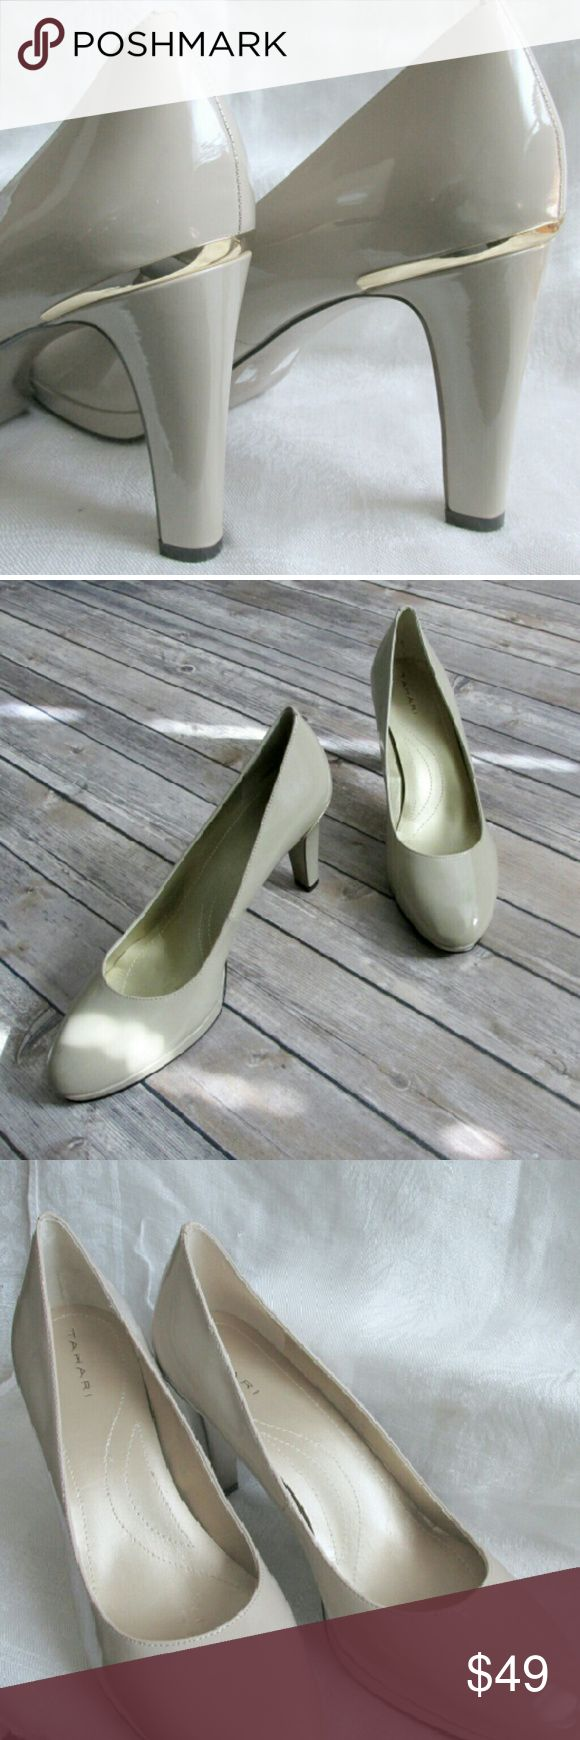 """""""Gold Cap""""  pumps Beige pumps with a gold accent on the heel. Pump has 1"""" platform with a solid heel. Heel measures 4"""" but will feel like 3"""" due to the platform.  A great pump for the office or special occasion.  DD 22.11.16 Tahari Shoes Heels"""